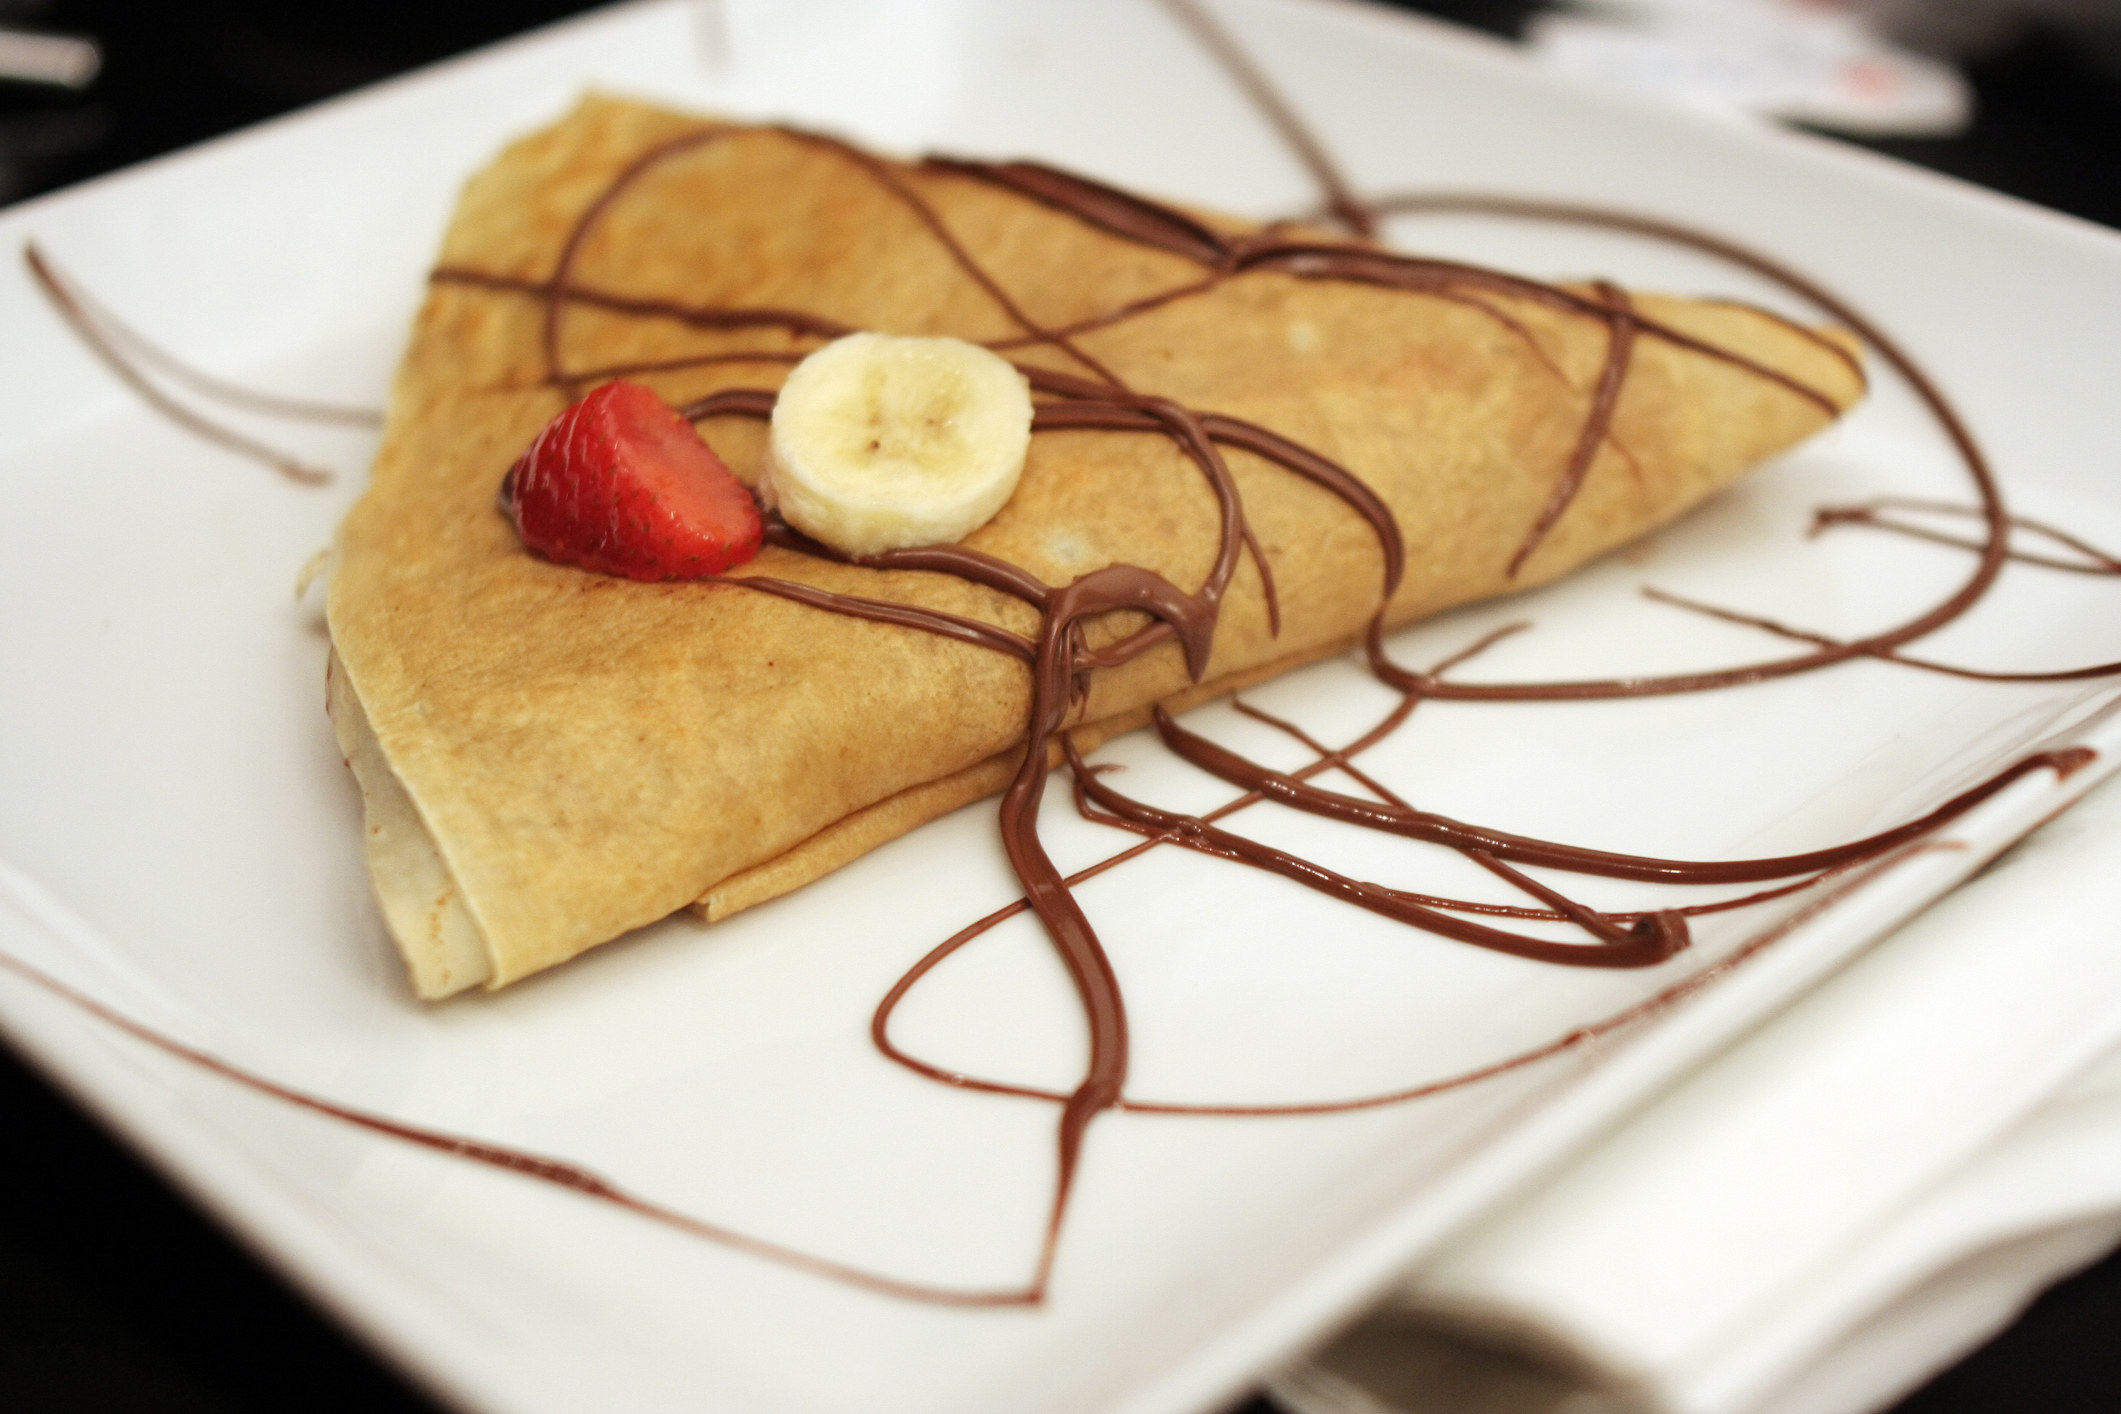 A crepe drizzled with chocolate and topped with a strawberry and a banana slice